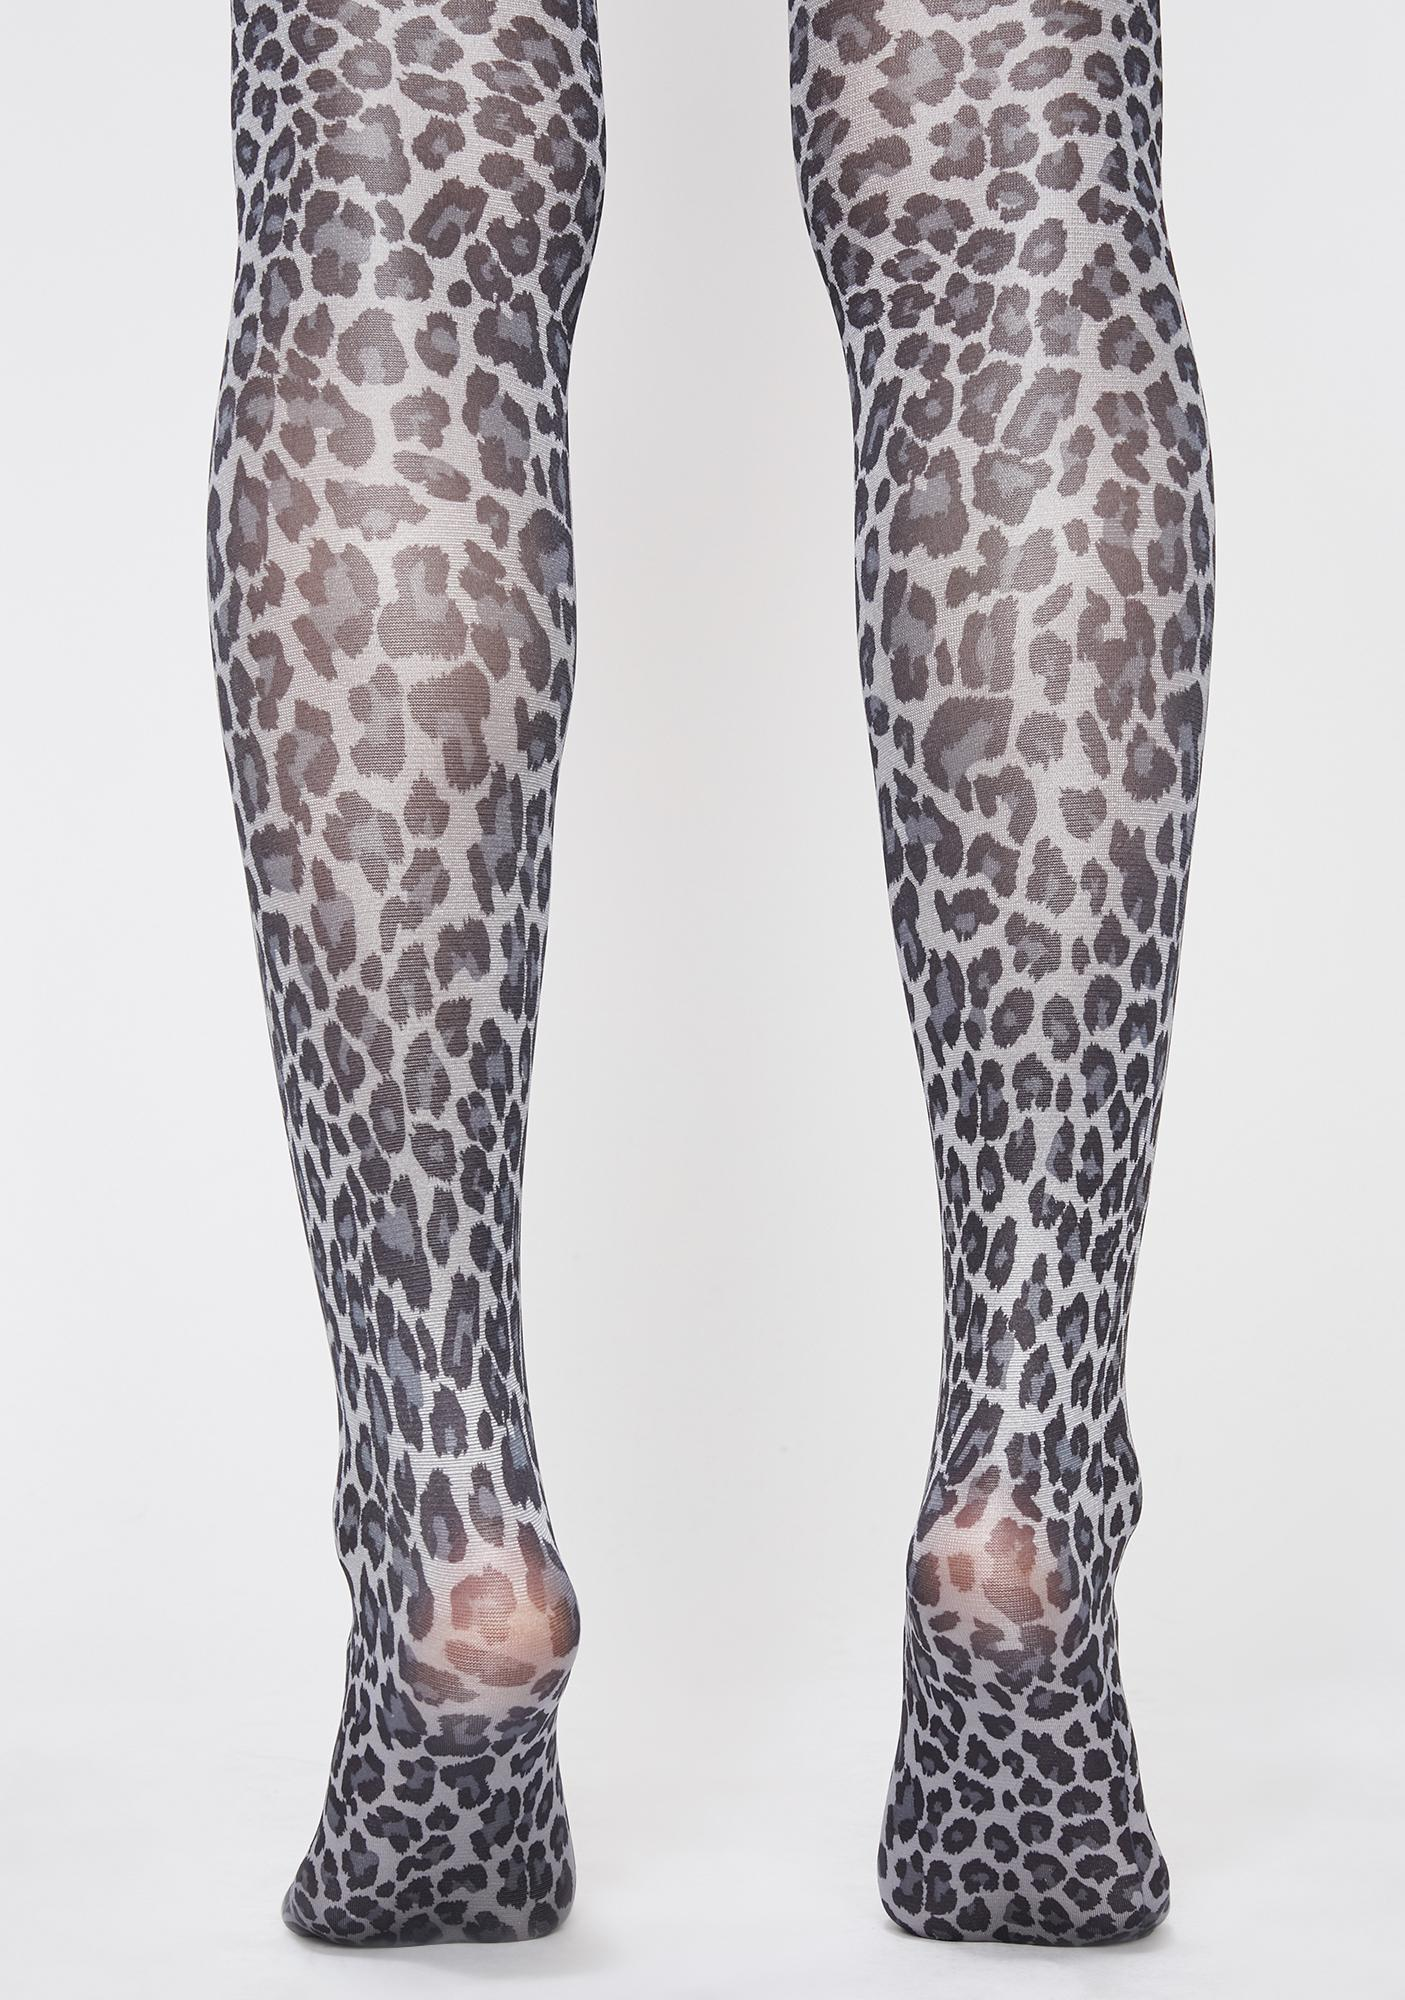 Hey Kitty Gurl Leopard Tights